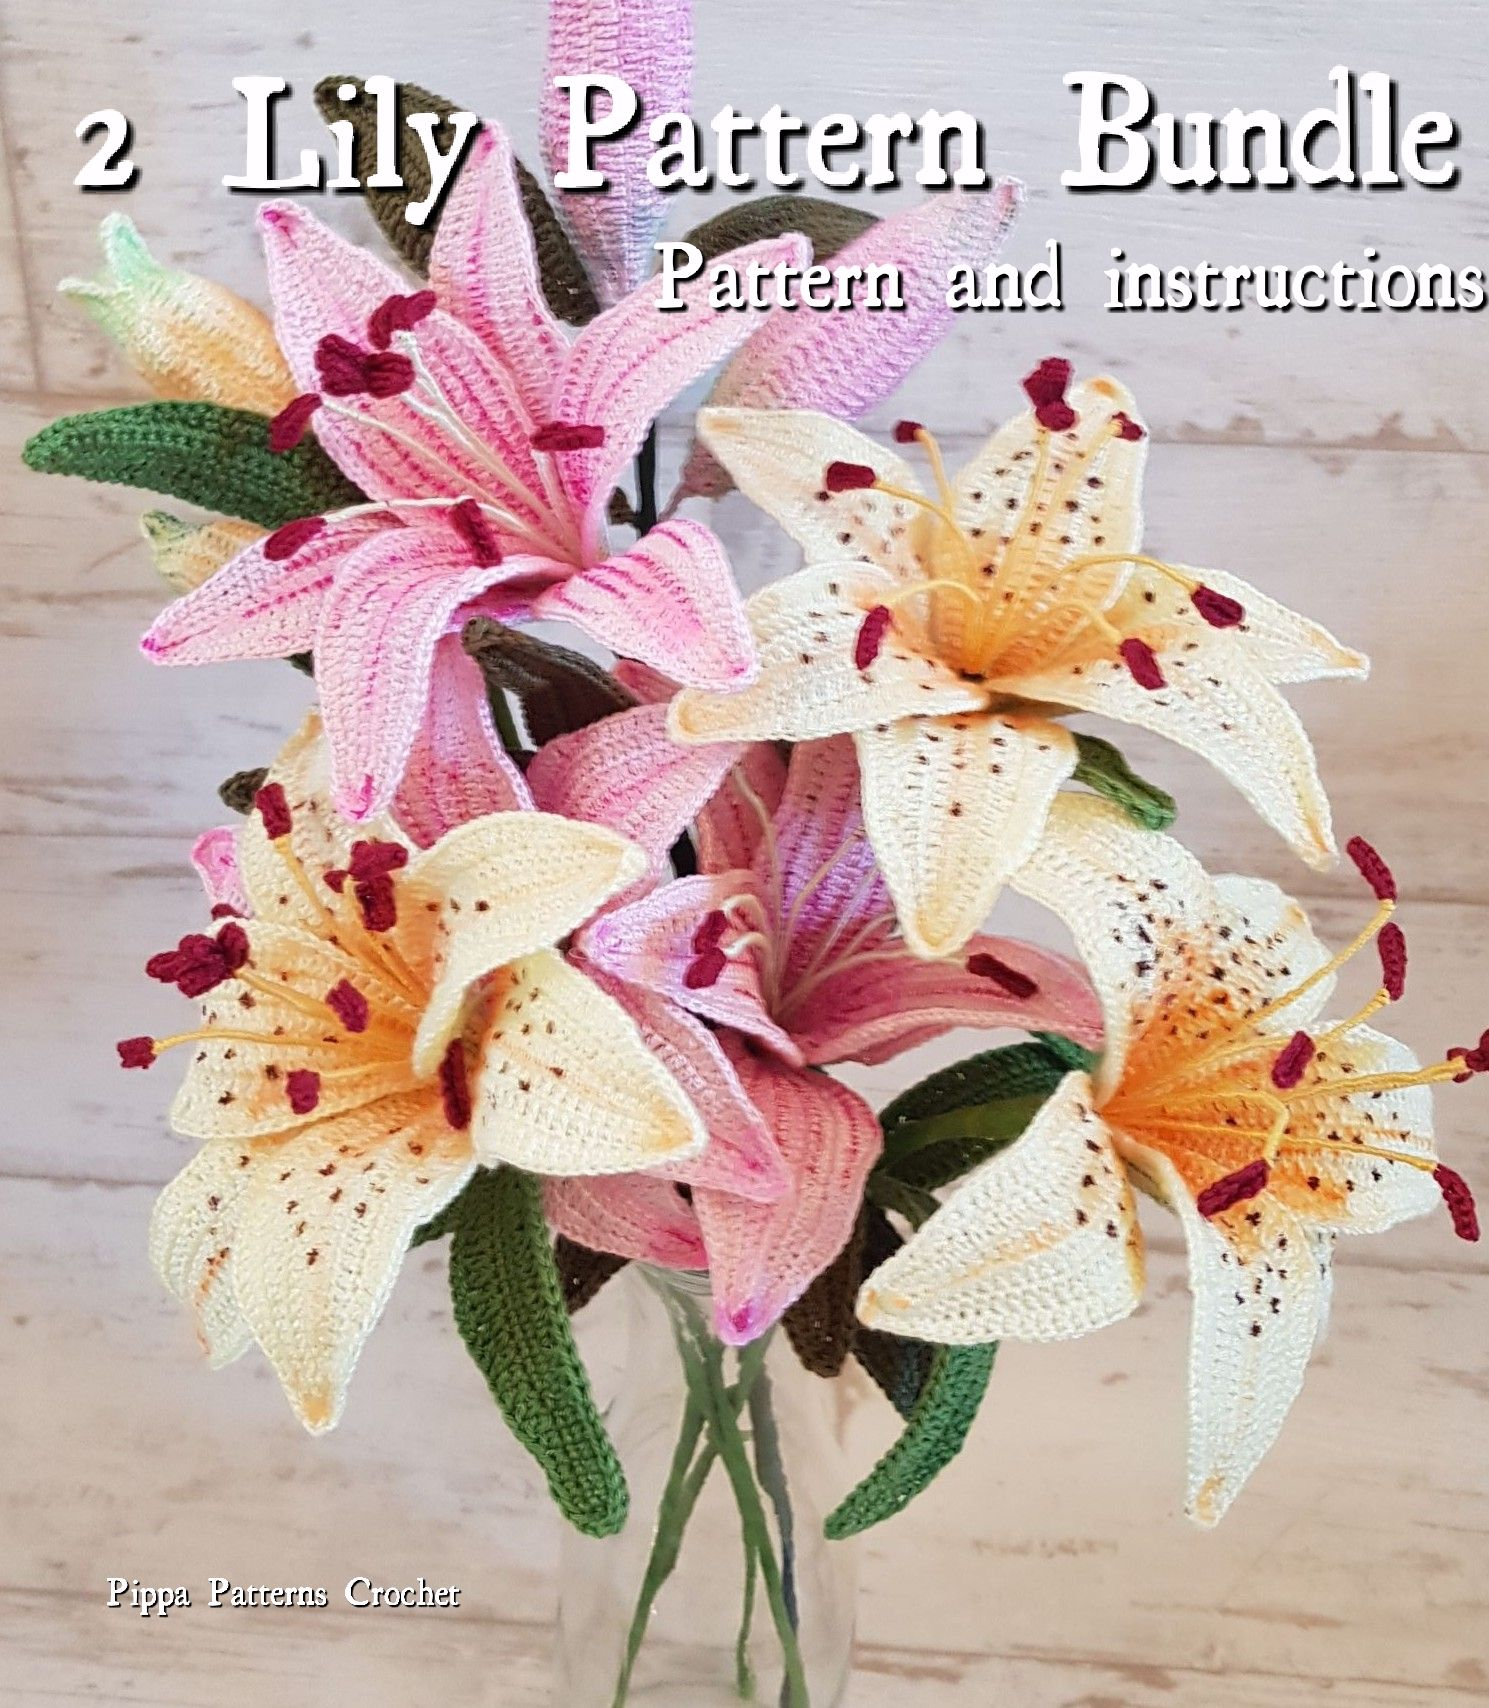 Crochet stargazer lily and pinktiger lily flower pattern and crochet stargazer lily and pinktiger lily flower pattern and instructions crochet flower plant for decoration home handmade pink white izmirmasajfo